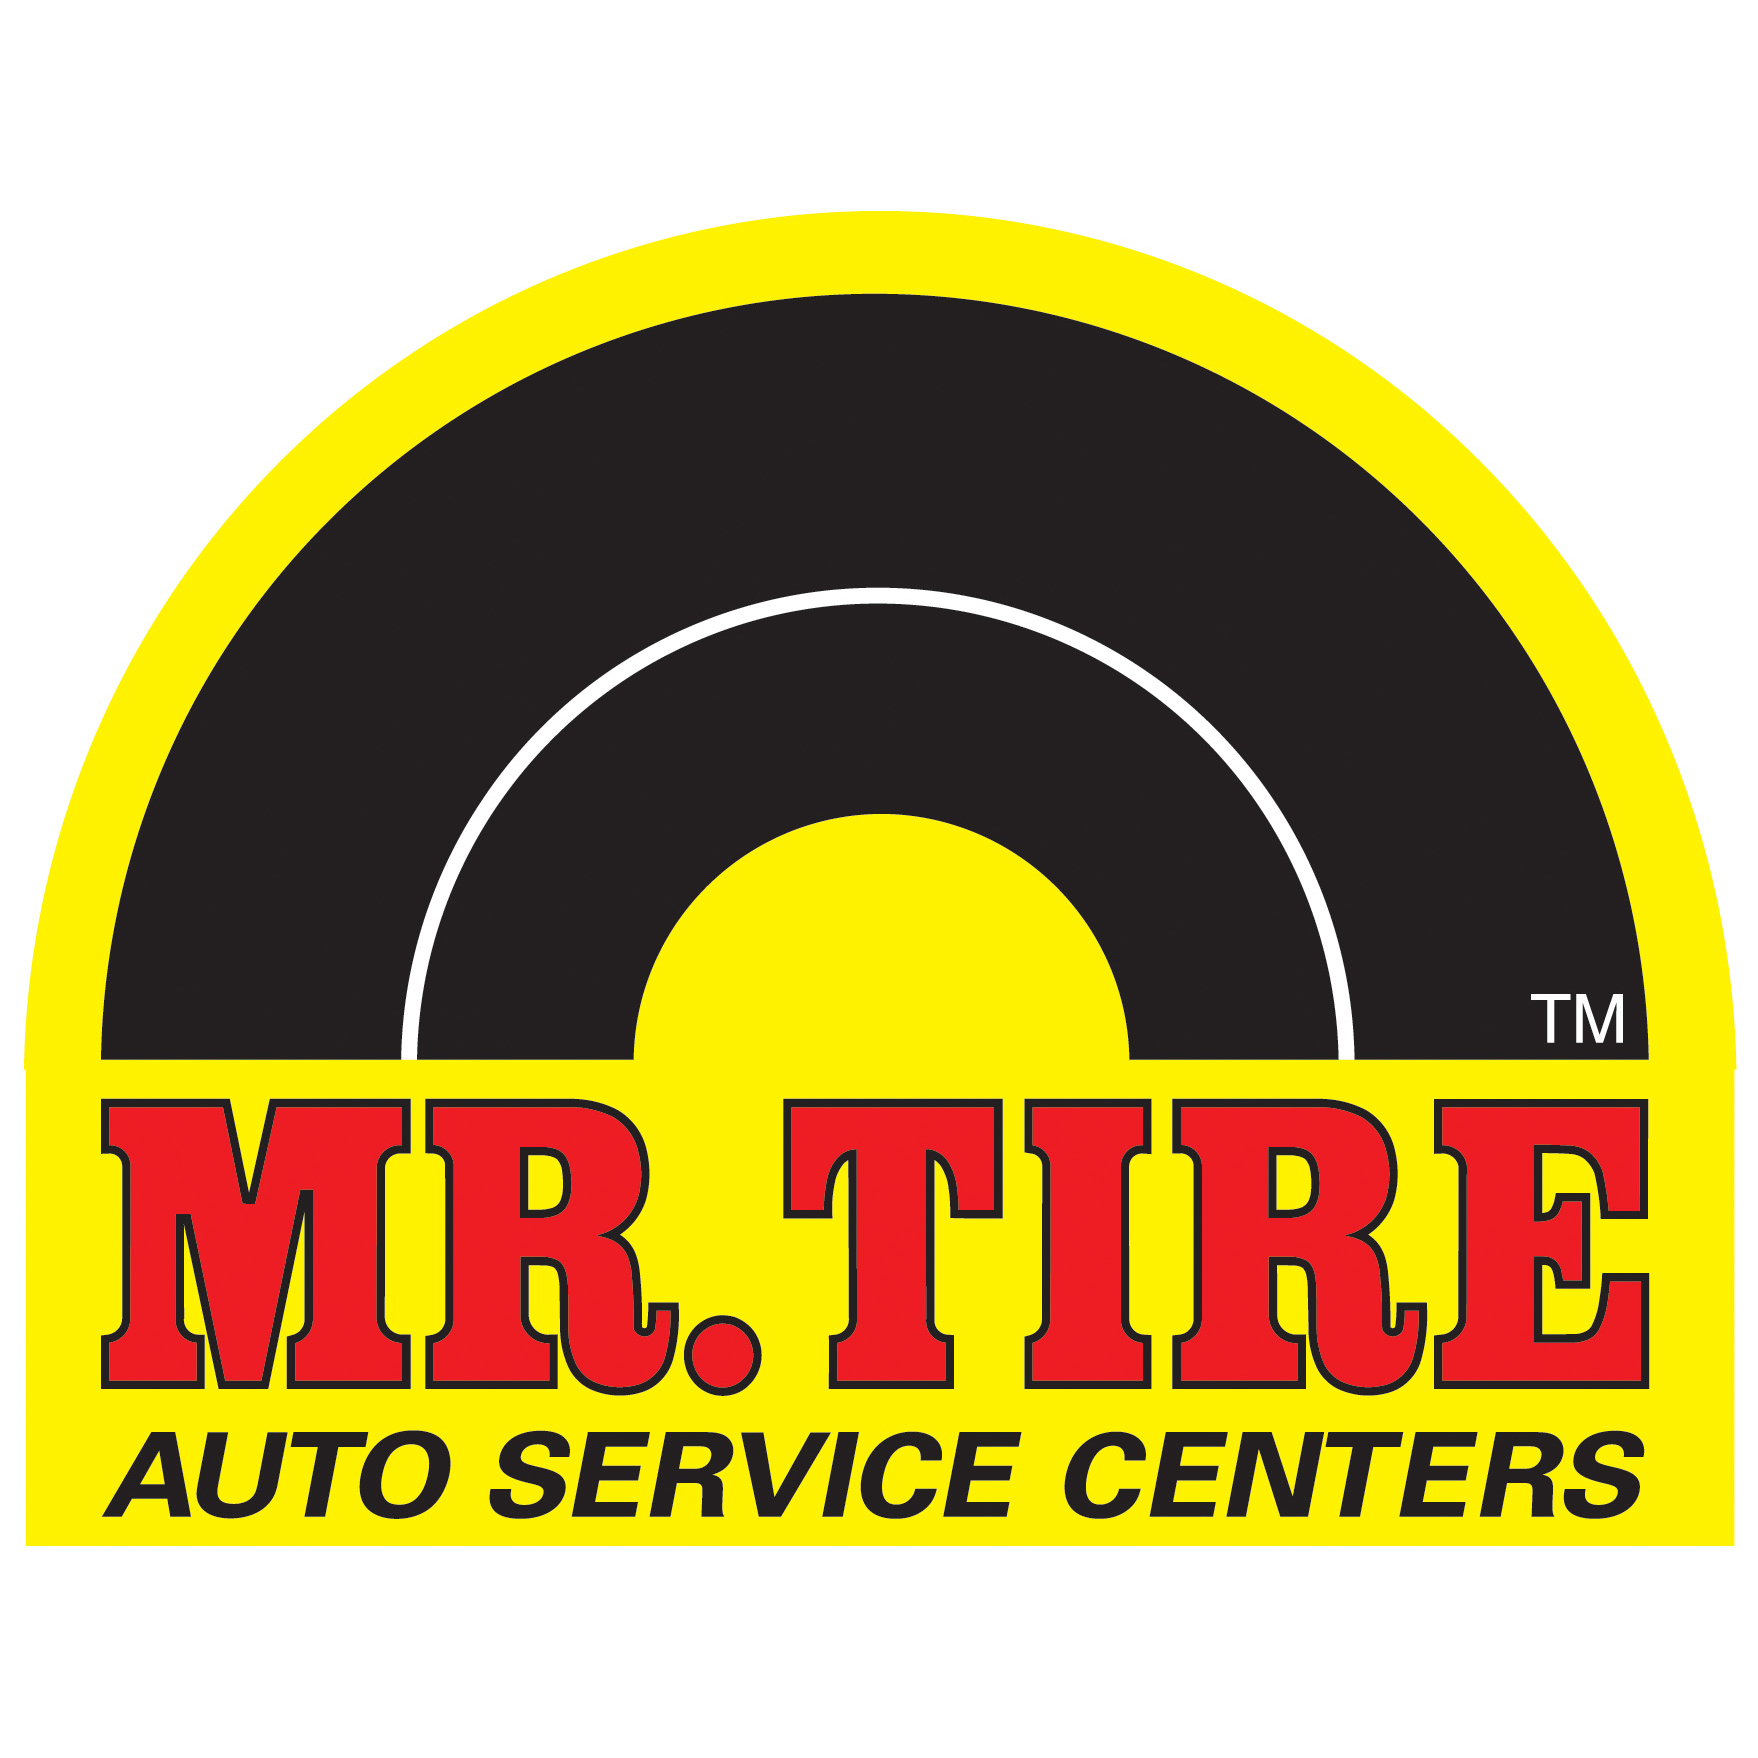 Mr Tire Auto Service Centers - Solon, OH - General Auto Repair & Service